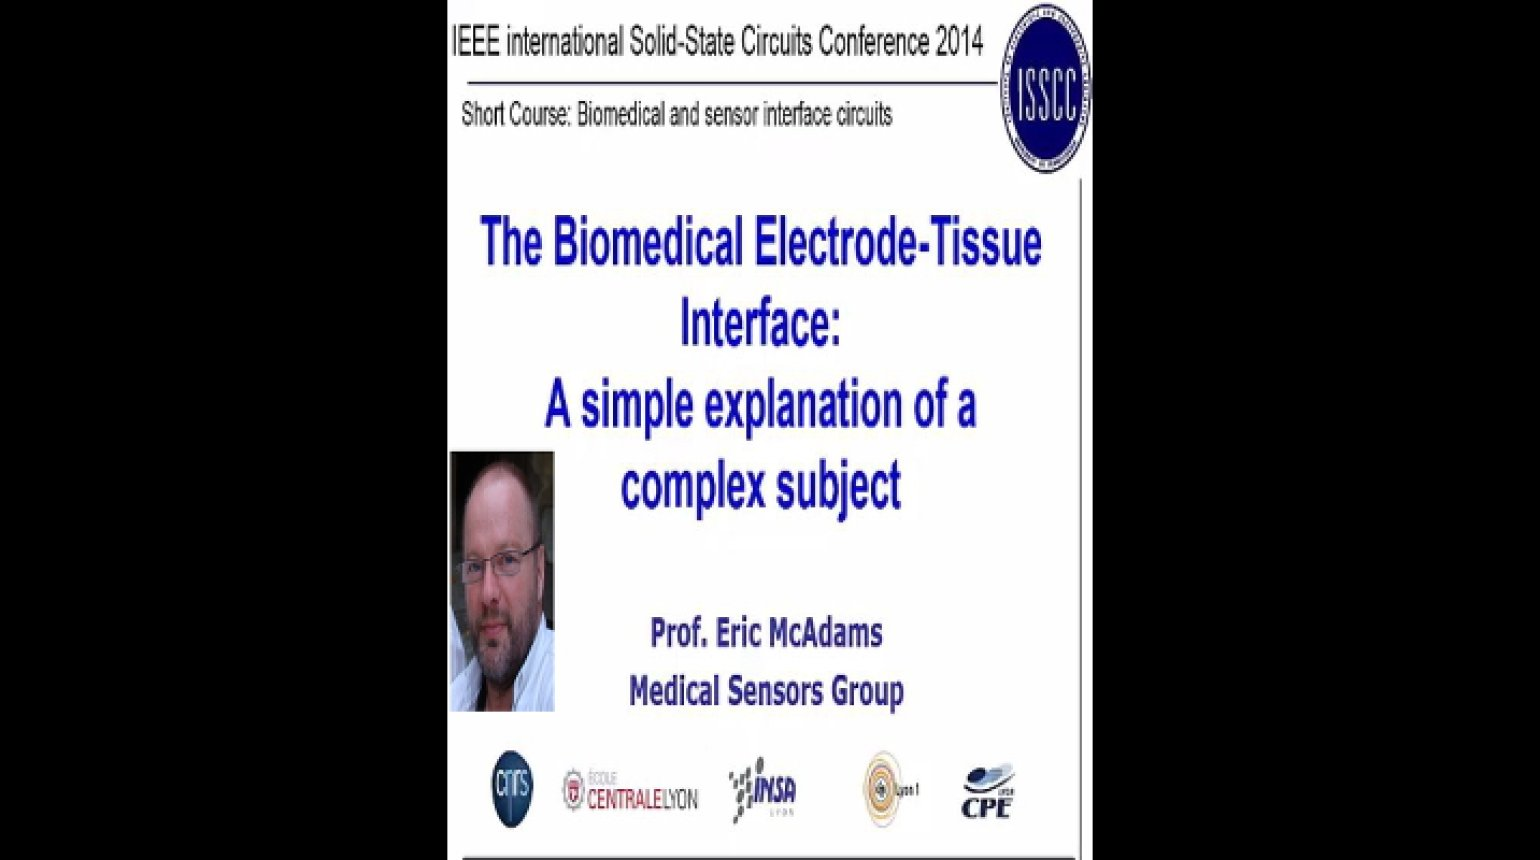 The Biomedical-Electrode Tissue Interface: A Simple Explanation of a Complex Subject Video